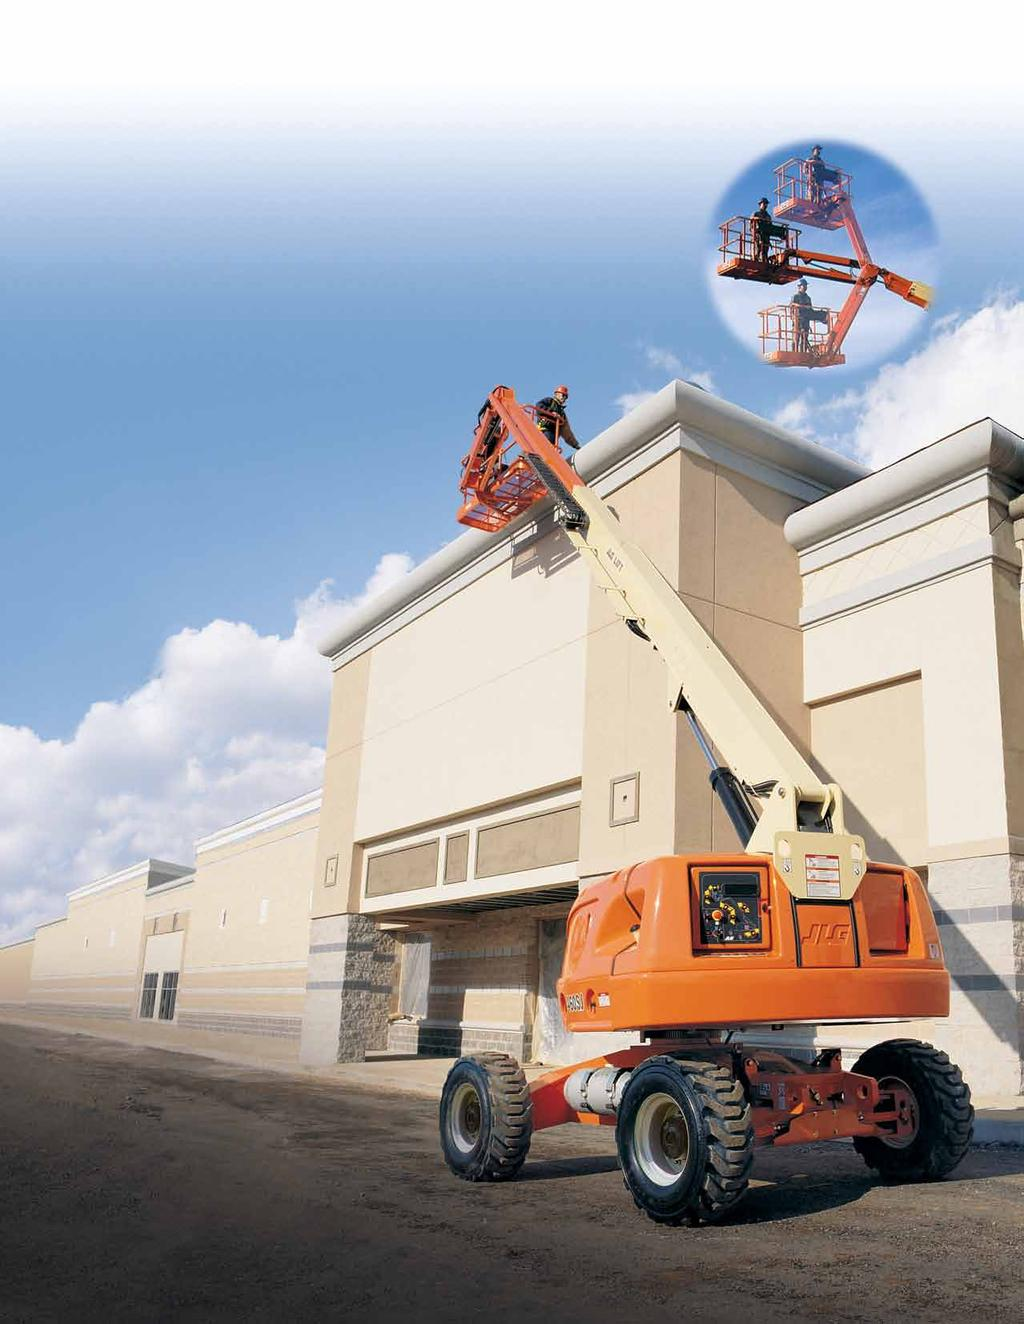 400 Series Telescopic Boom Lifts The Fastest Lift and Drive Speeds in Their Class. Experience a productivity boost with the 400 Series.